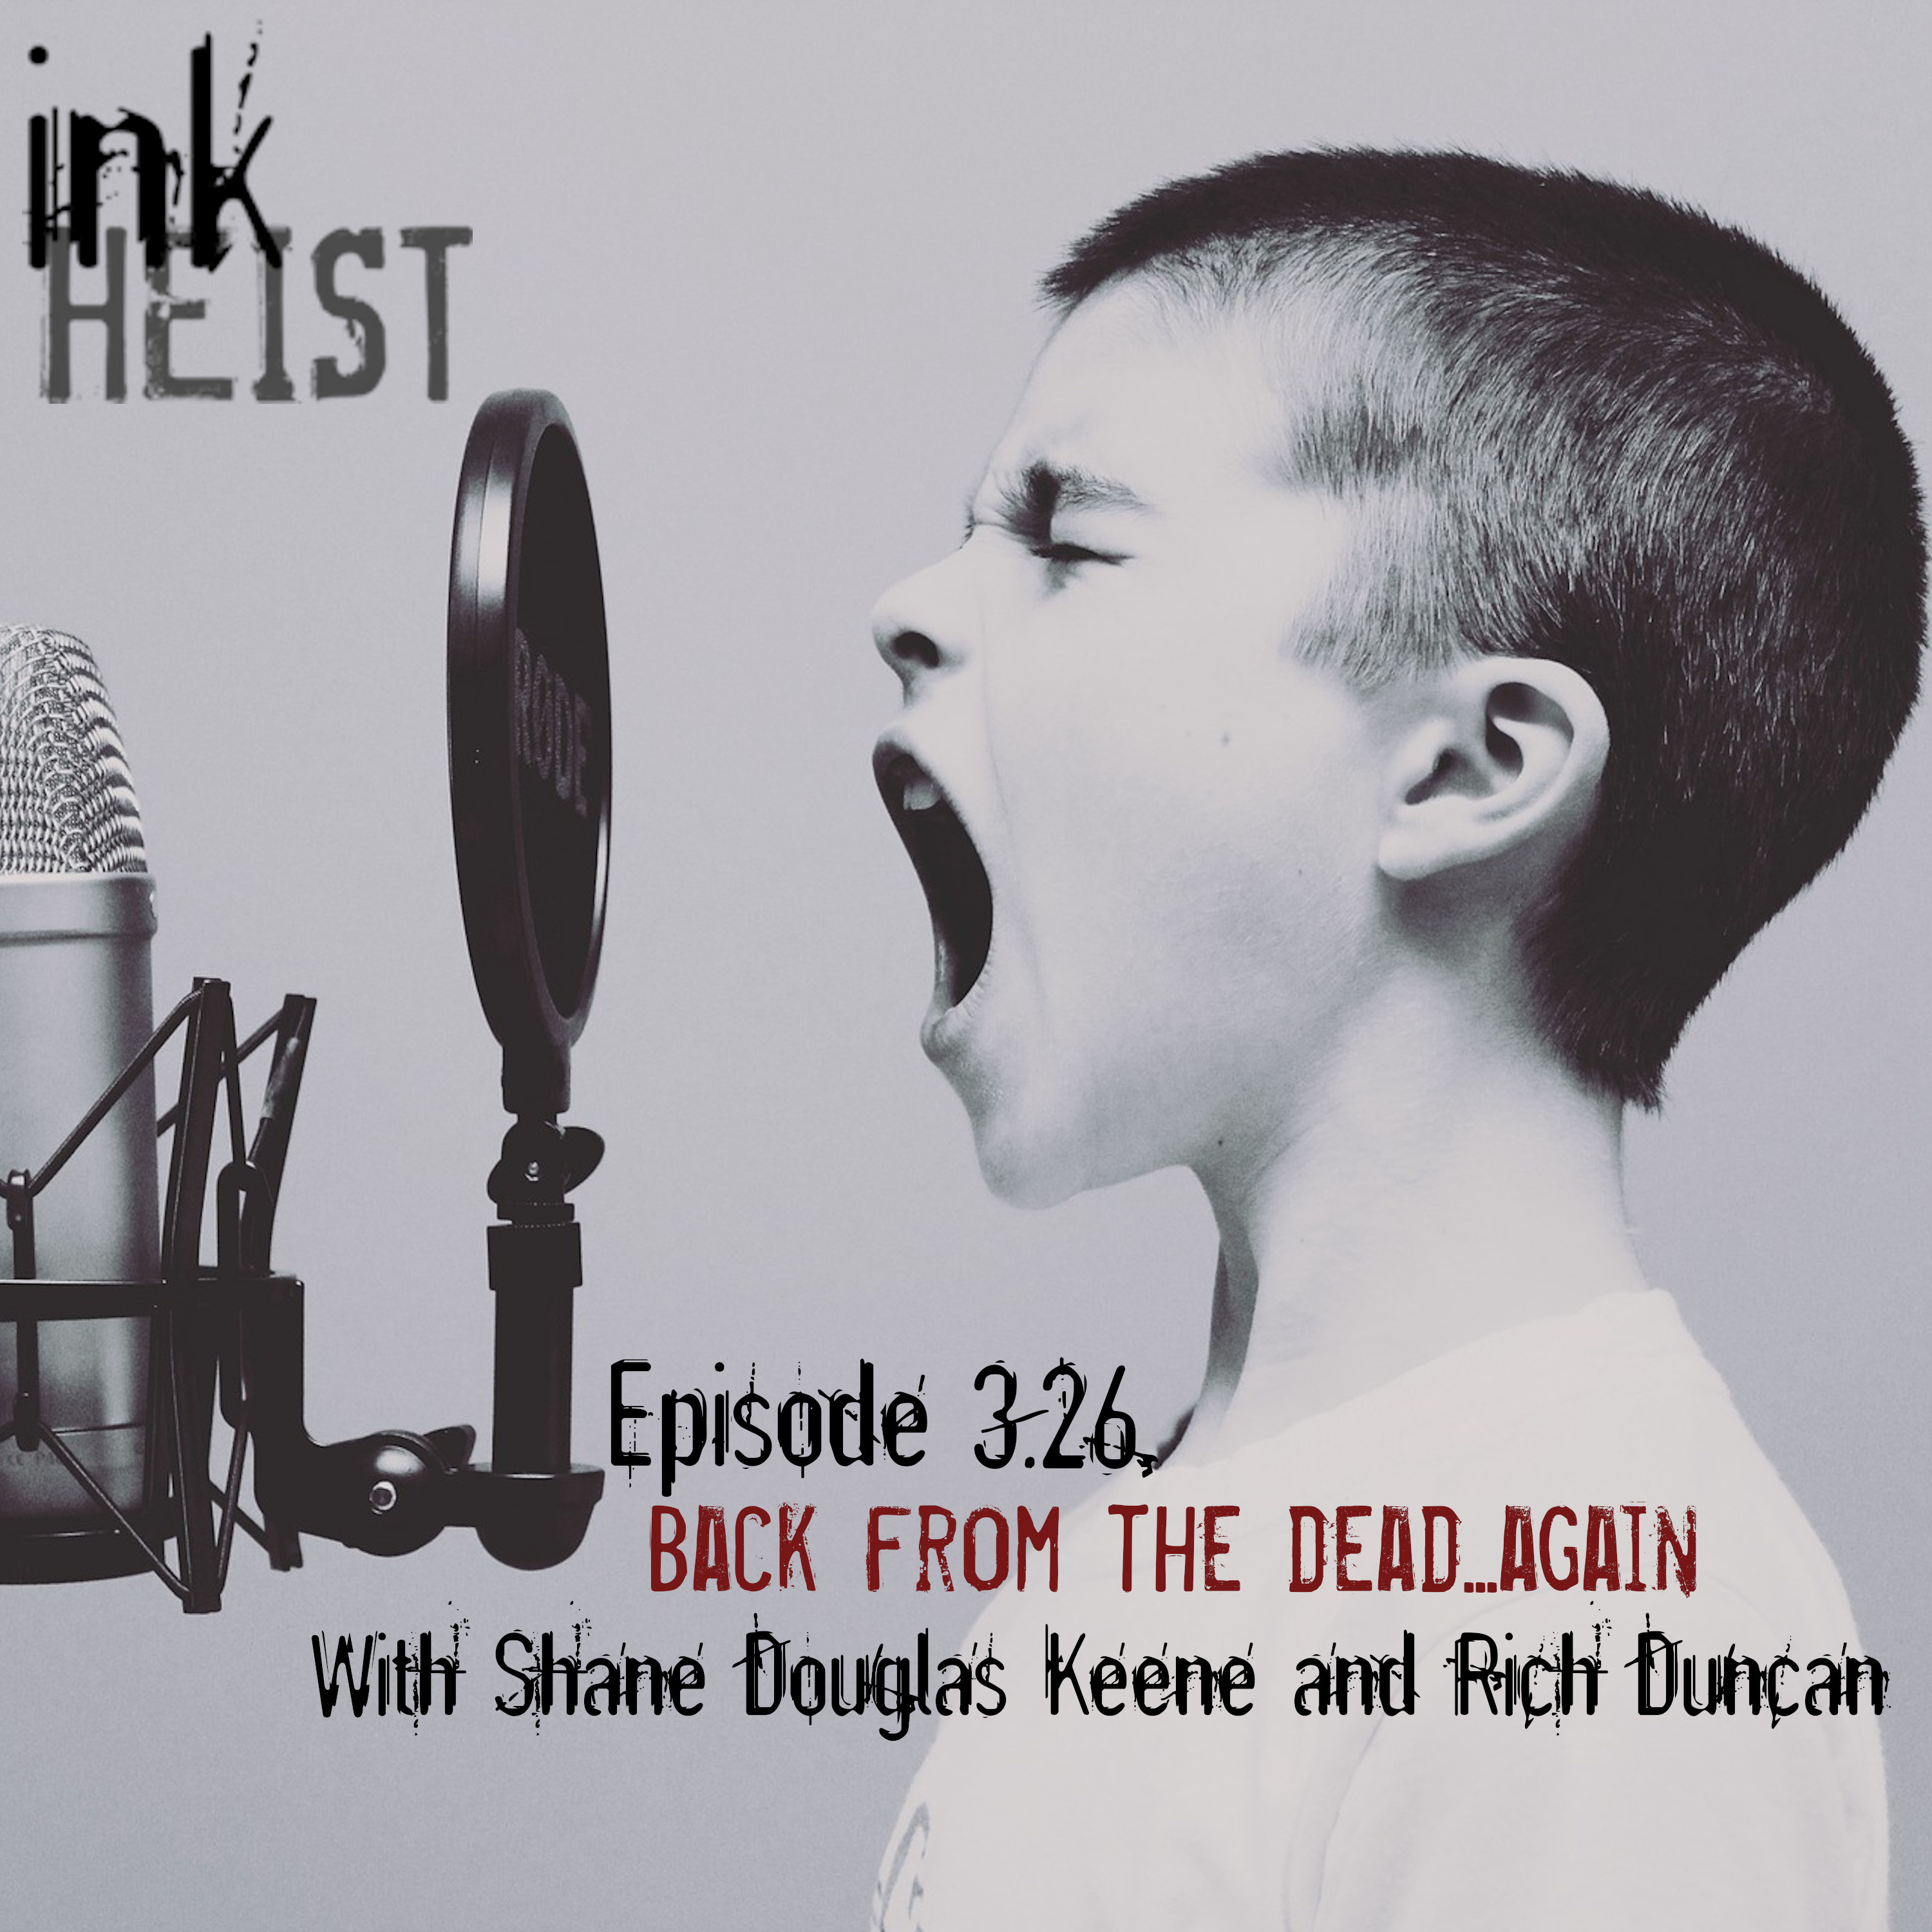 Episode 3.26 - Back From the Dead...Again with Rich and Shane